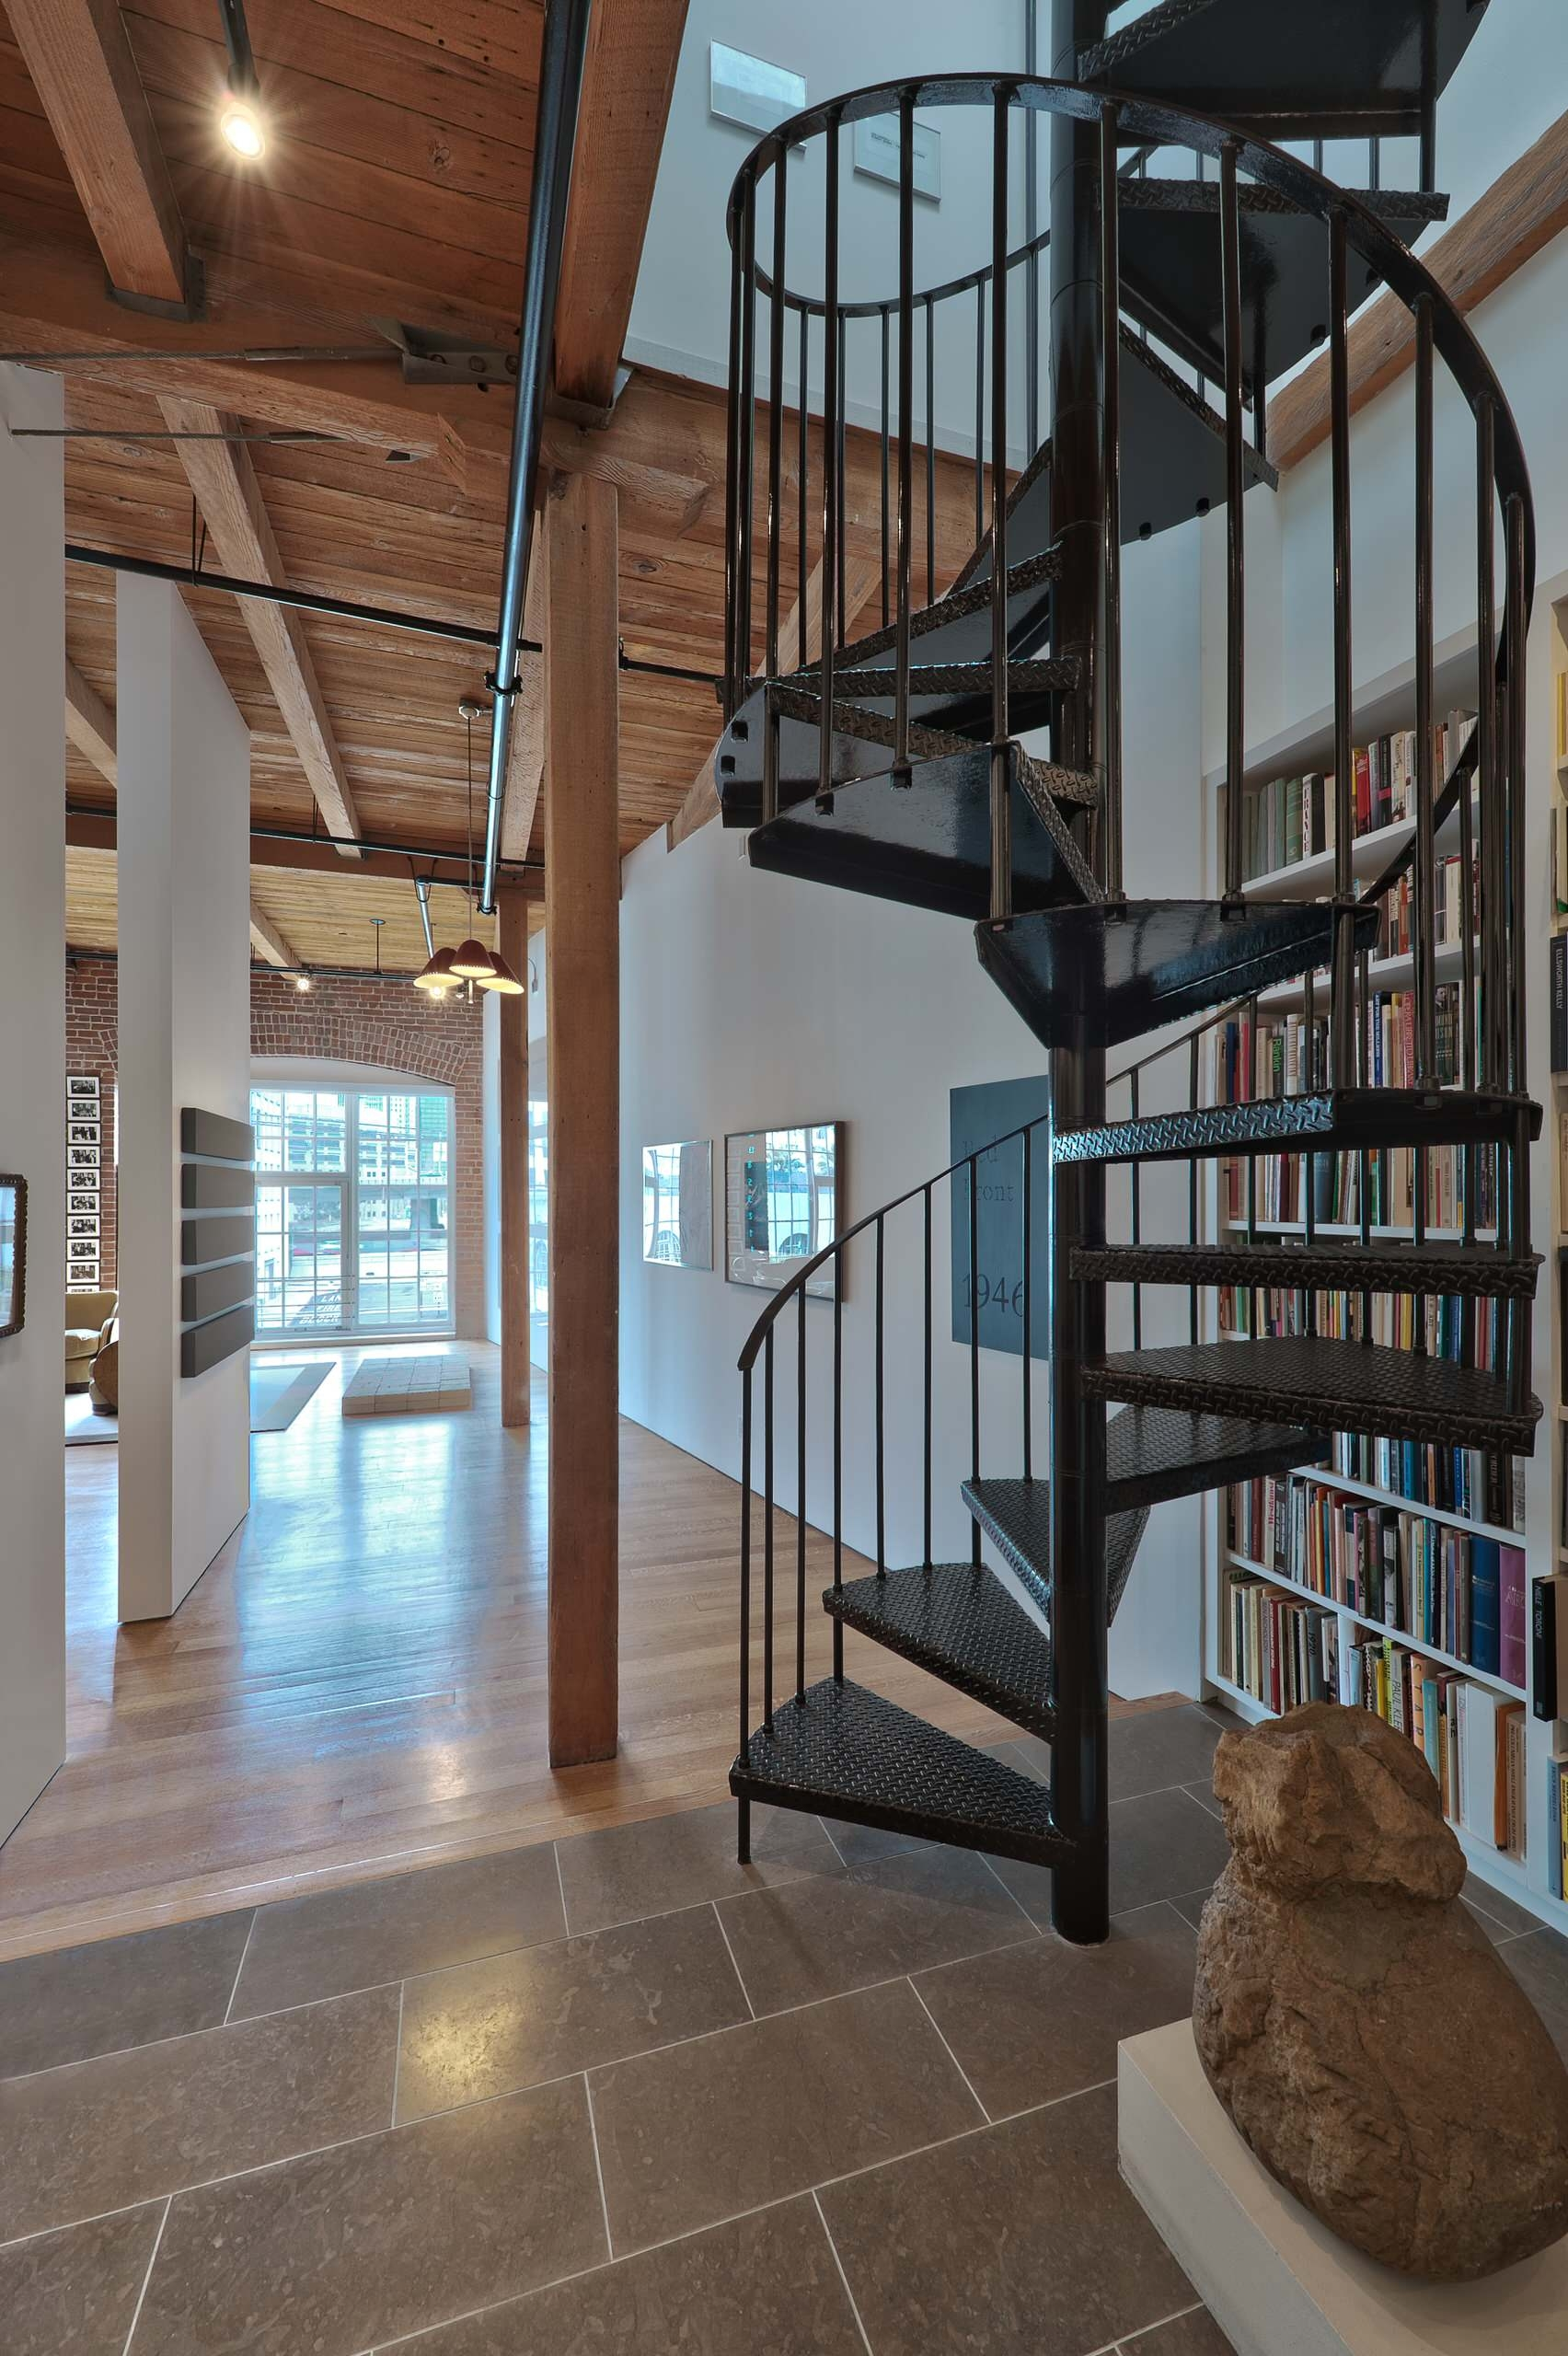 Wide Spiral Staircase Houzz | Used Spiral Staircase For Sale | Vertical | Exterior | Contemporary | Wrought Iron | Curved